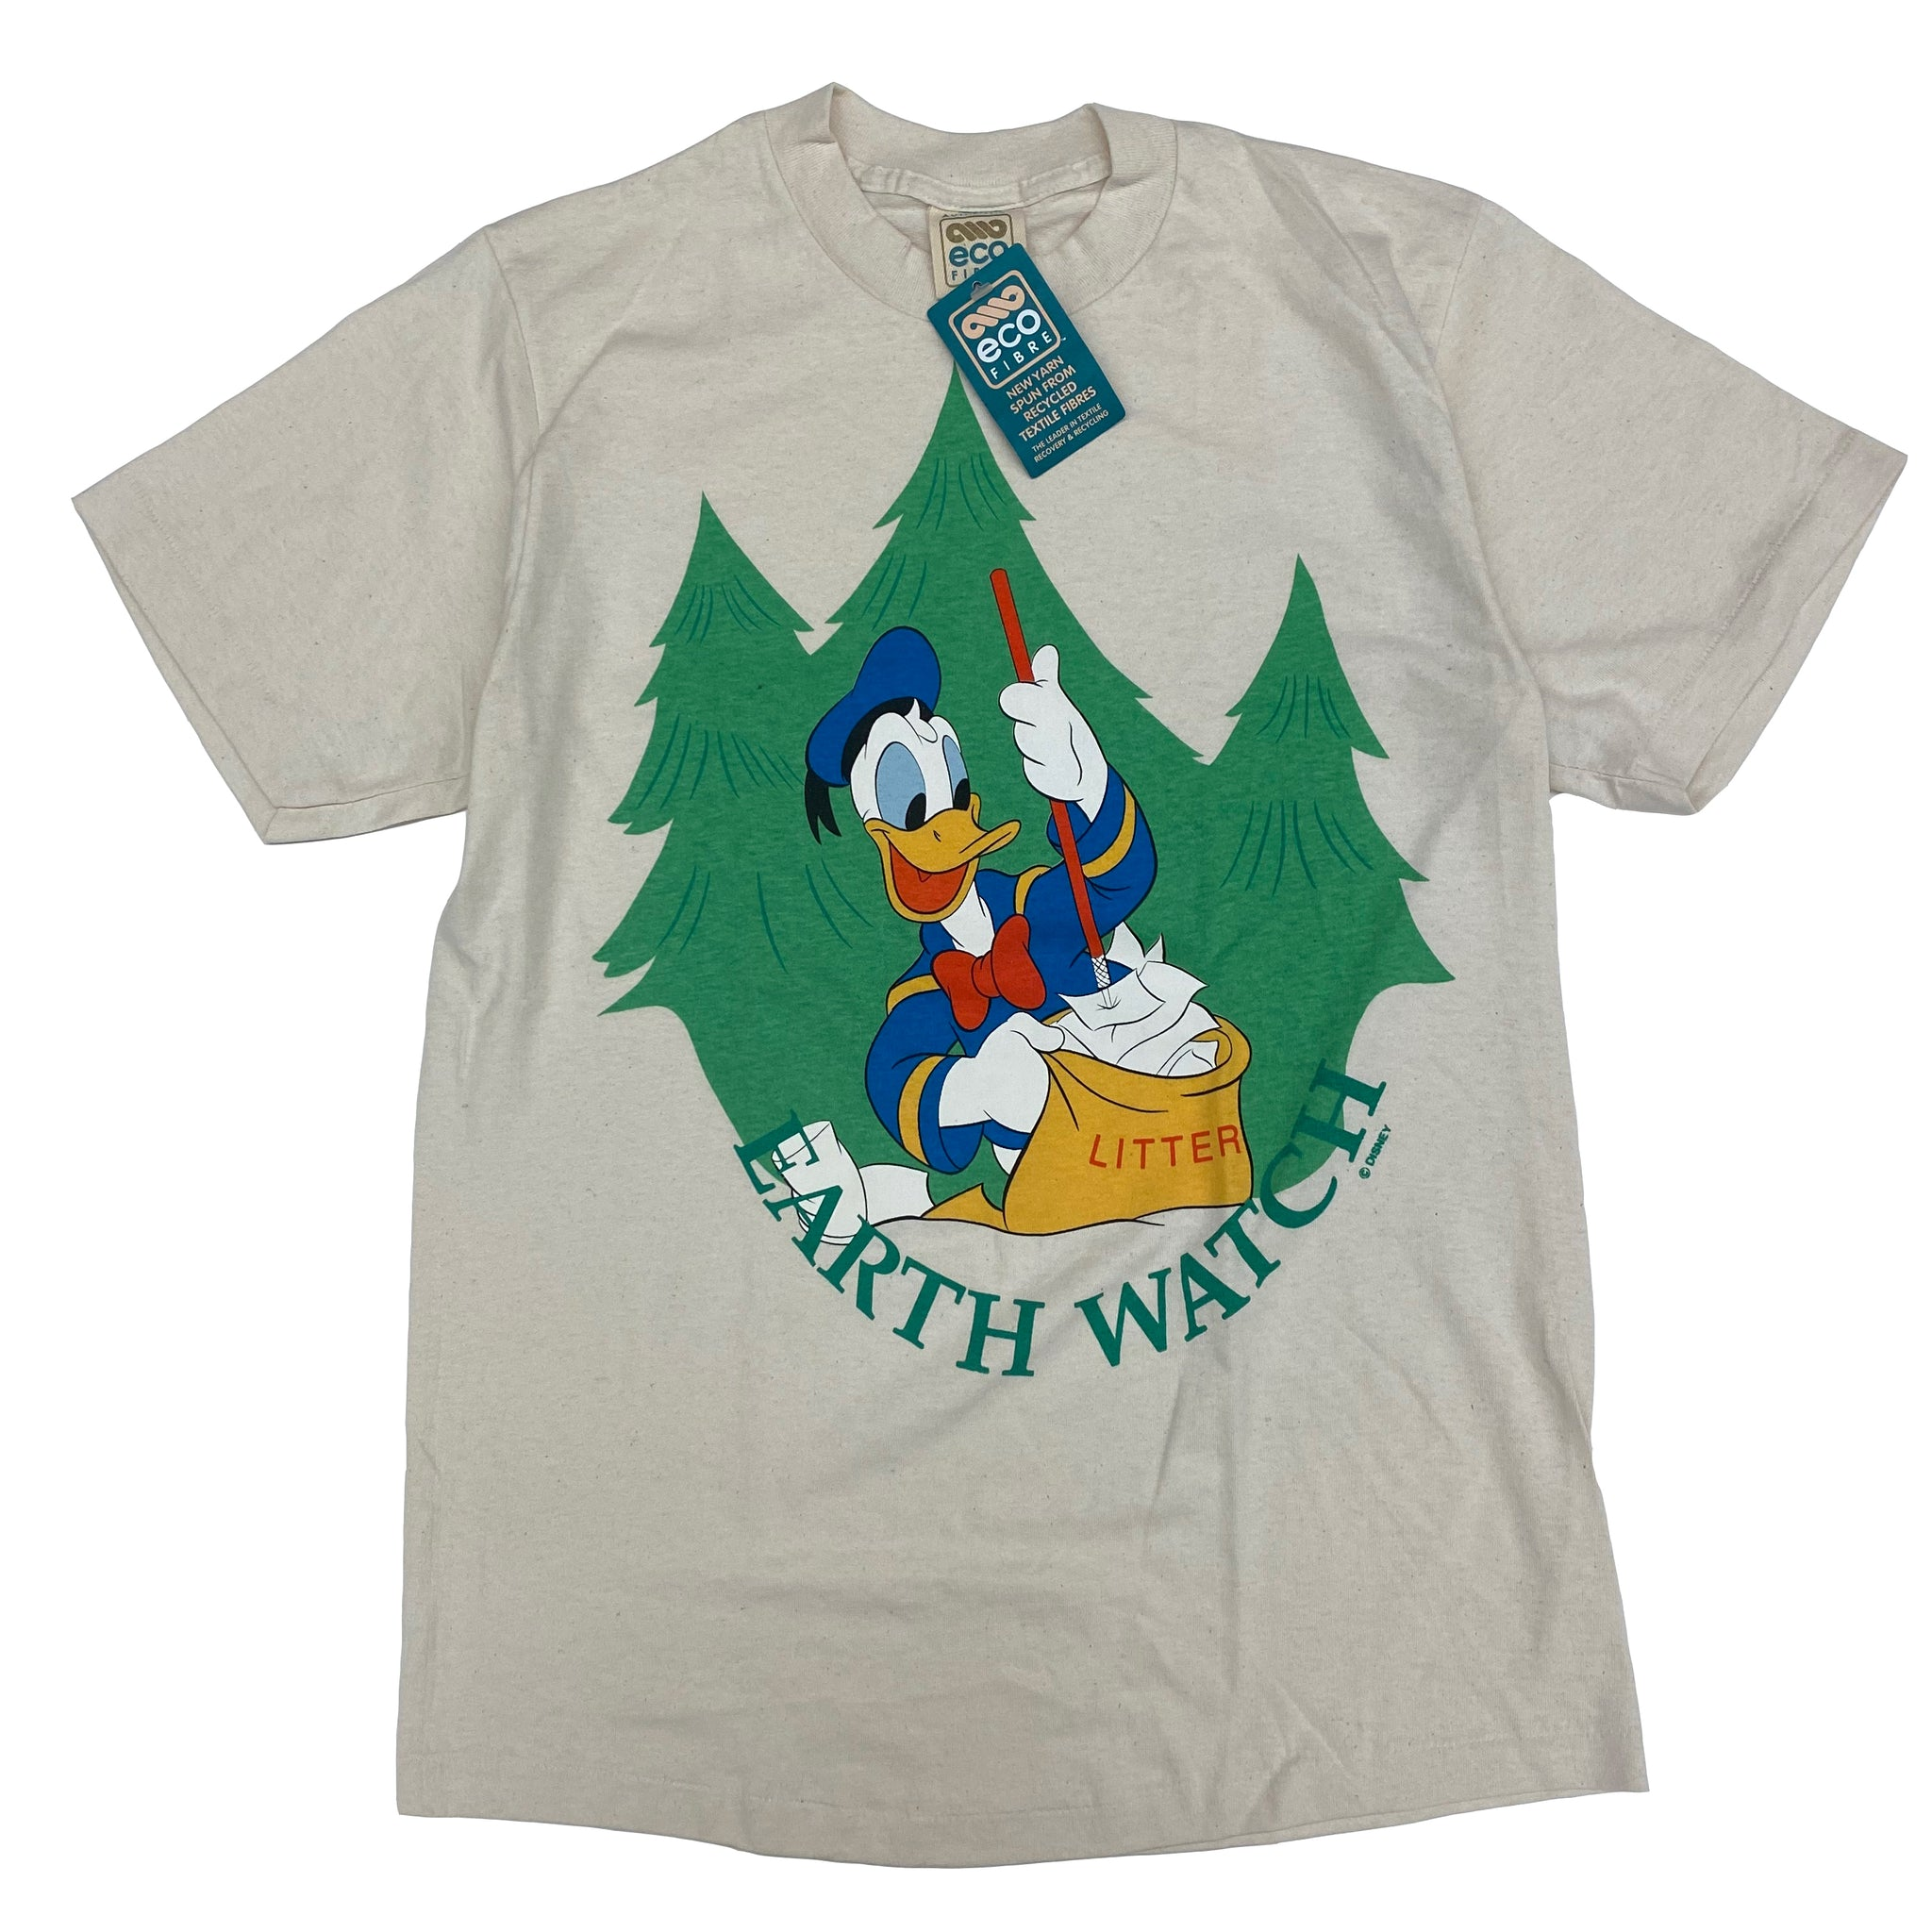 Donald Earth Watch BNWT - M - VTG '90s